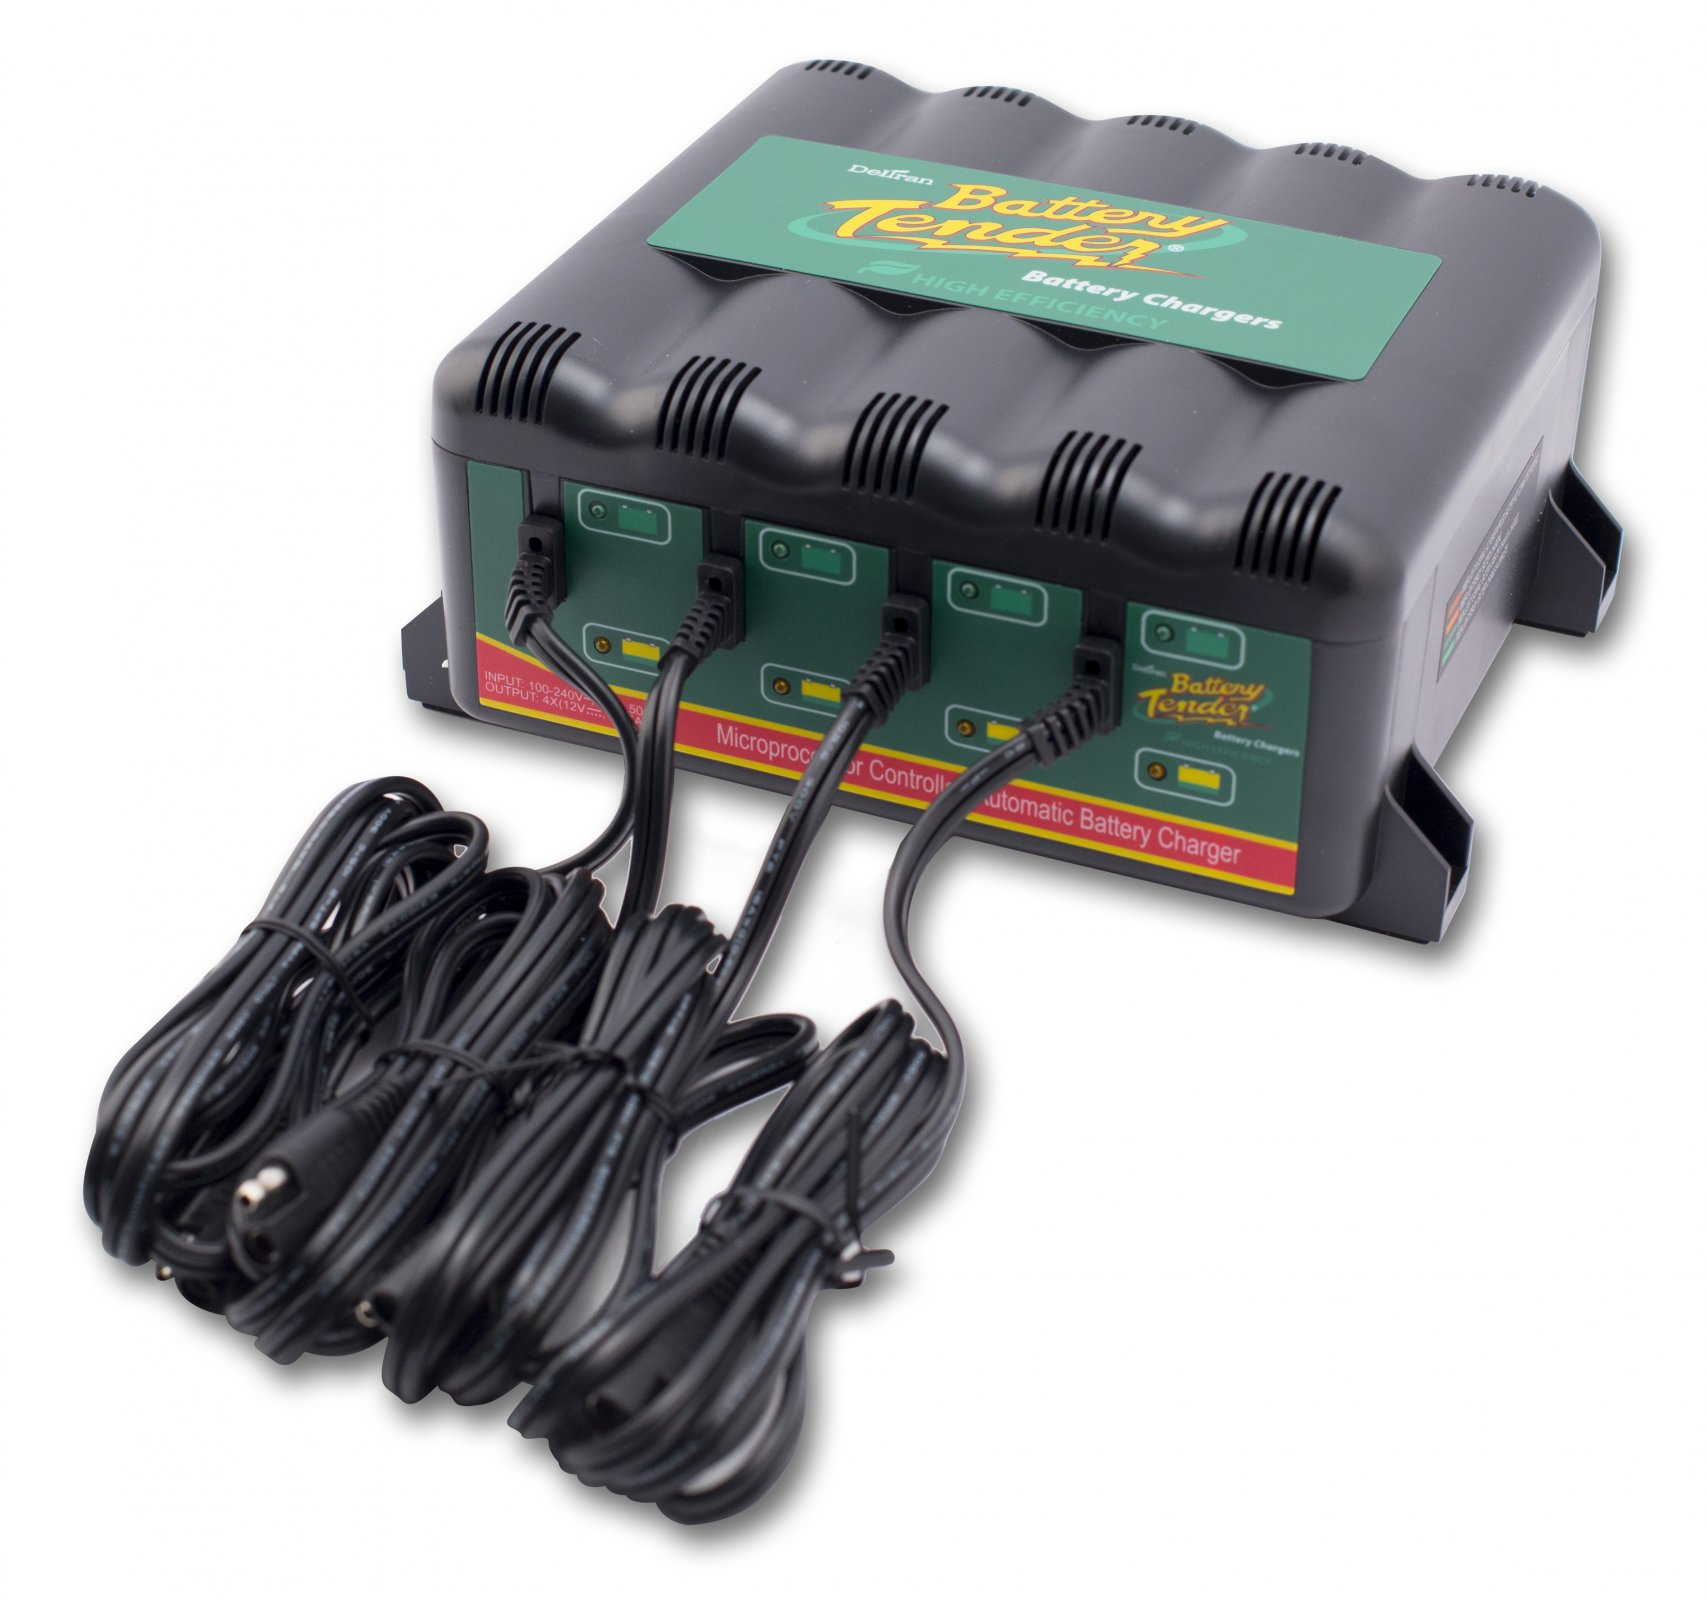 4-Bank Power Pac Charger